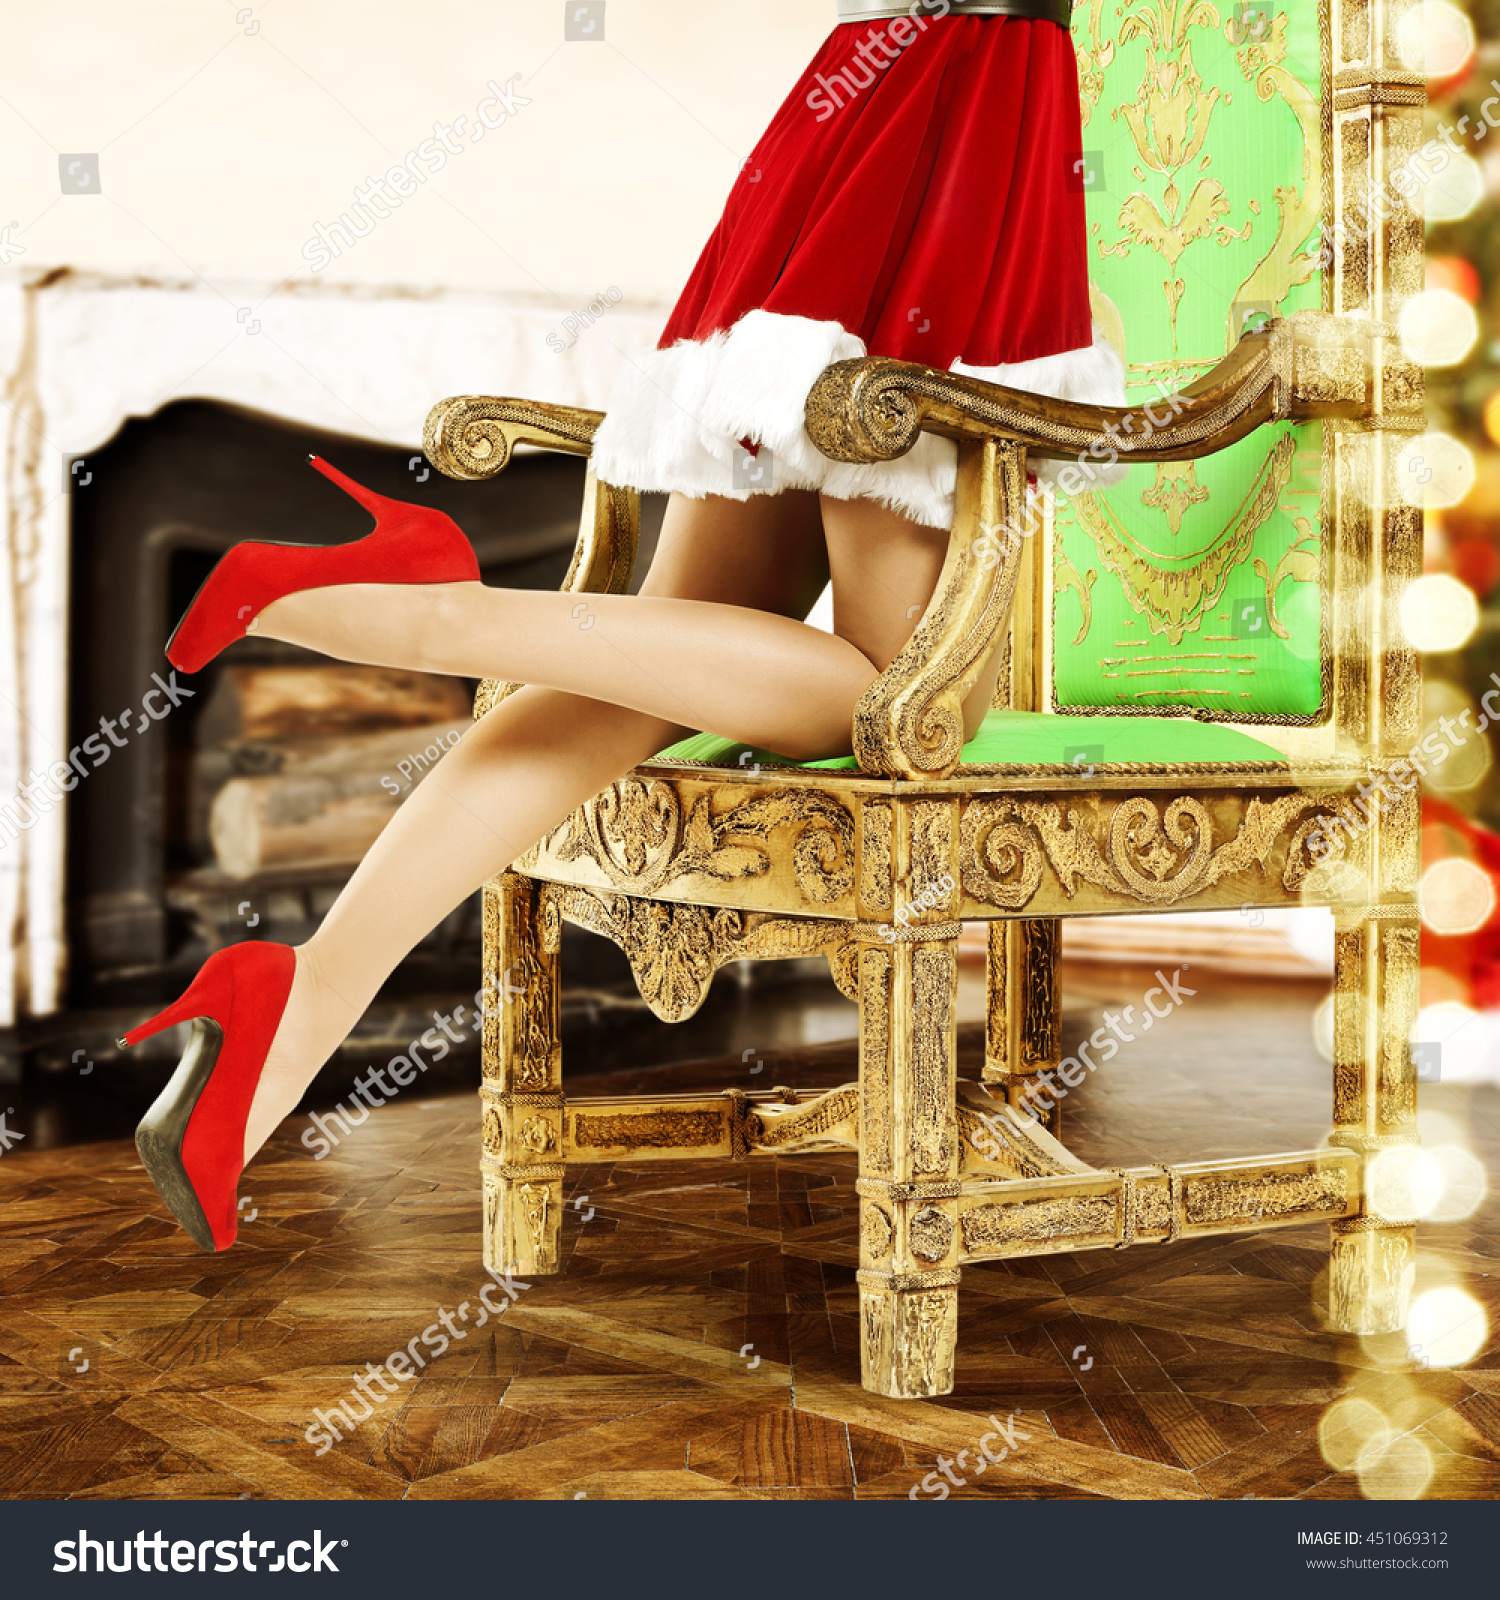 red heel chair eames style office chairs interior with golden of santa claus and heels